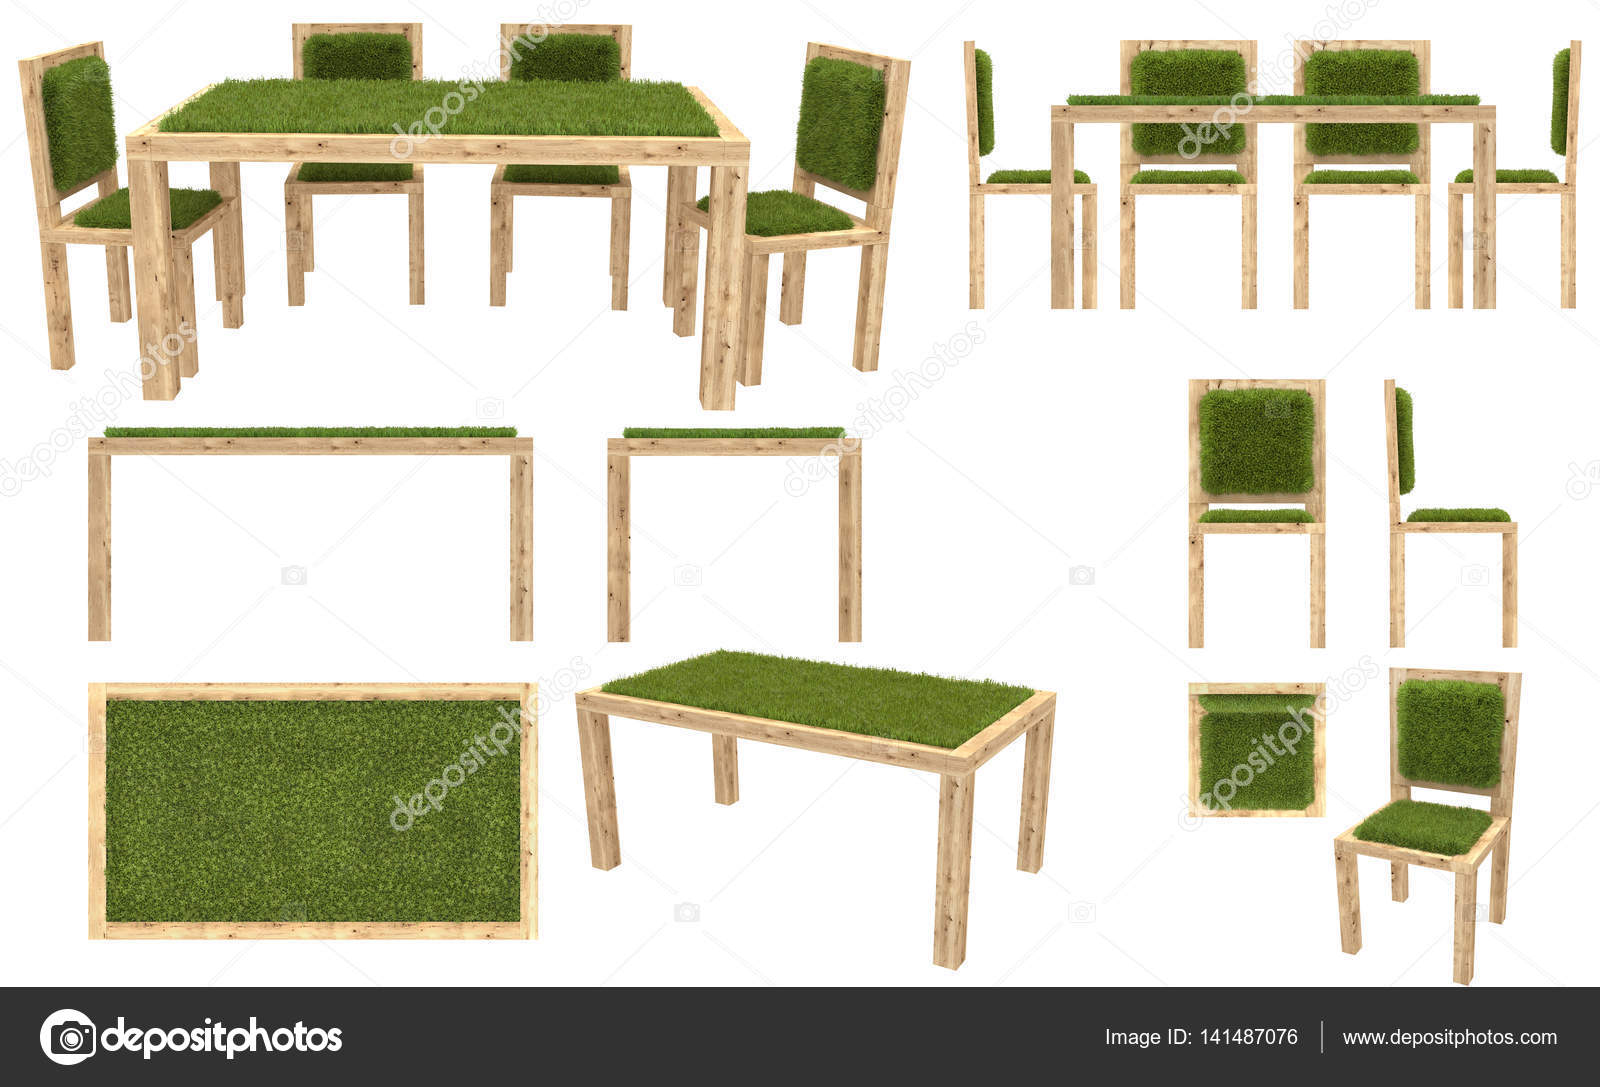 Wooden table and chairs with grass cover Garden furniture Top